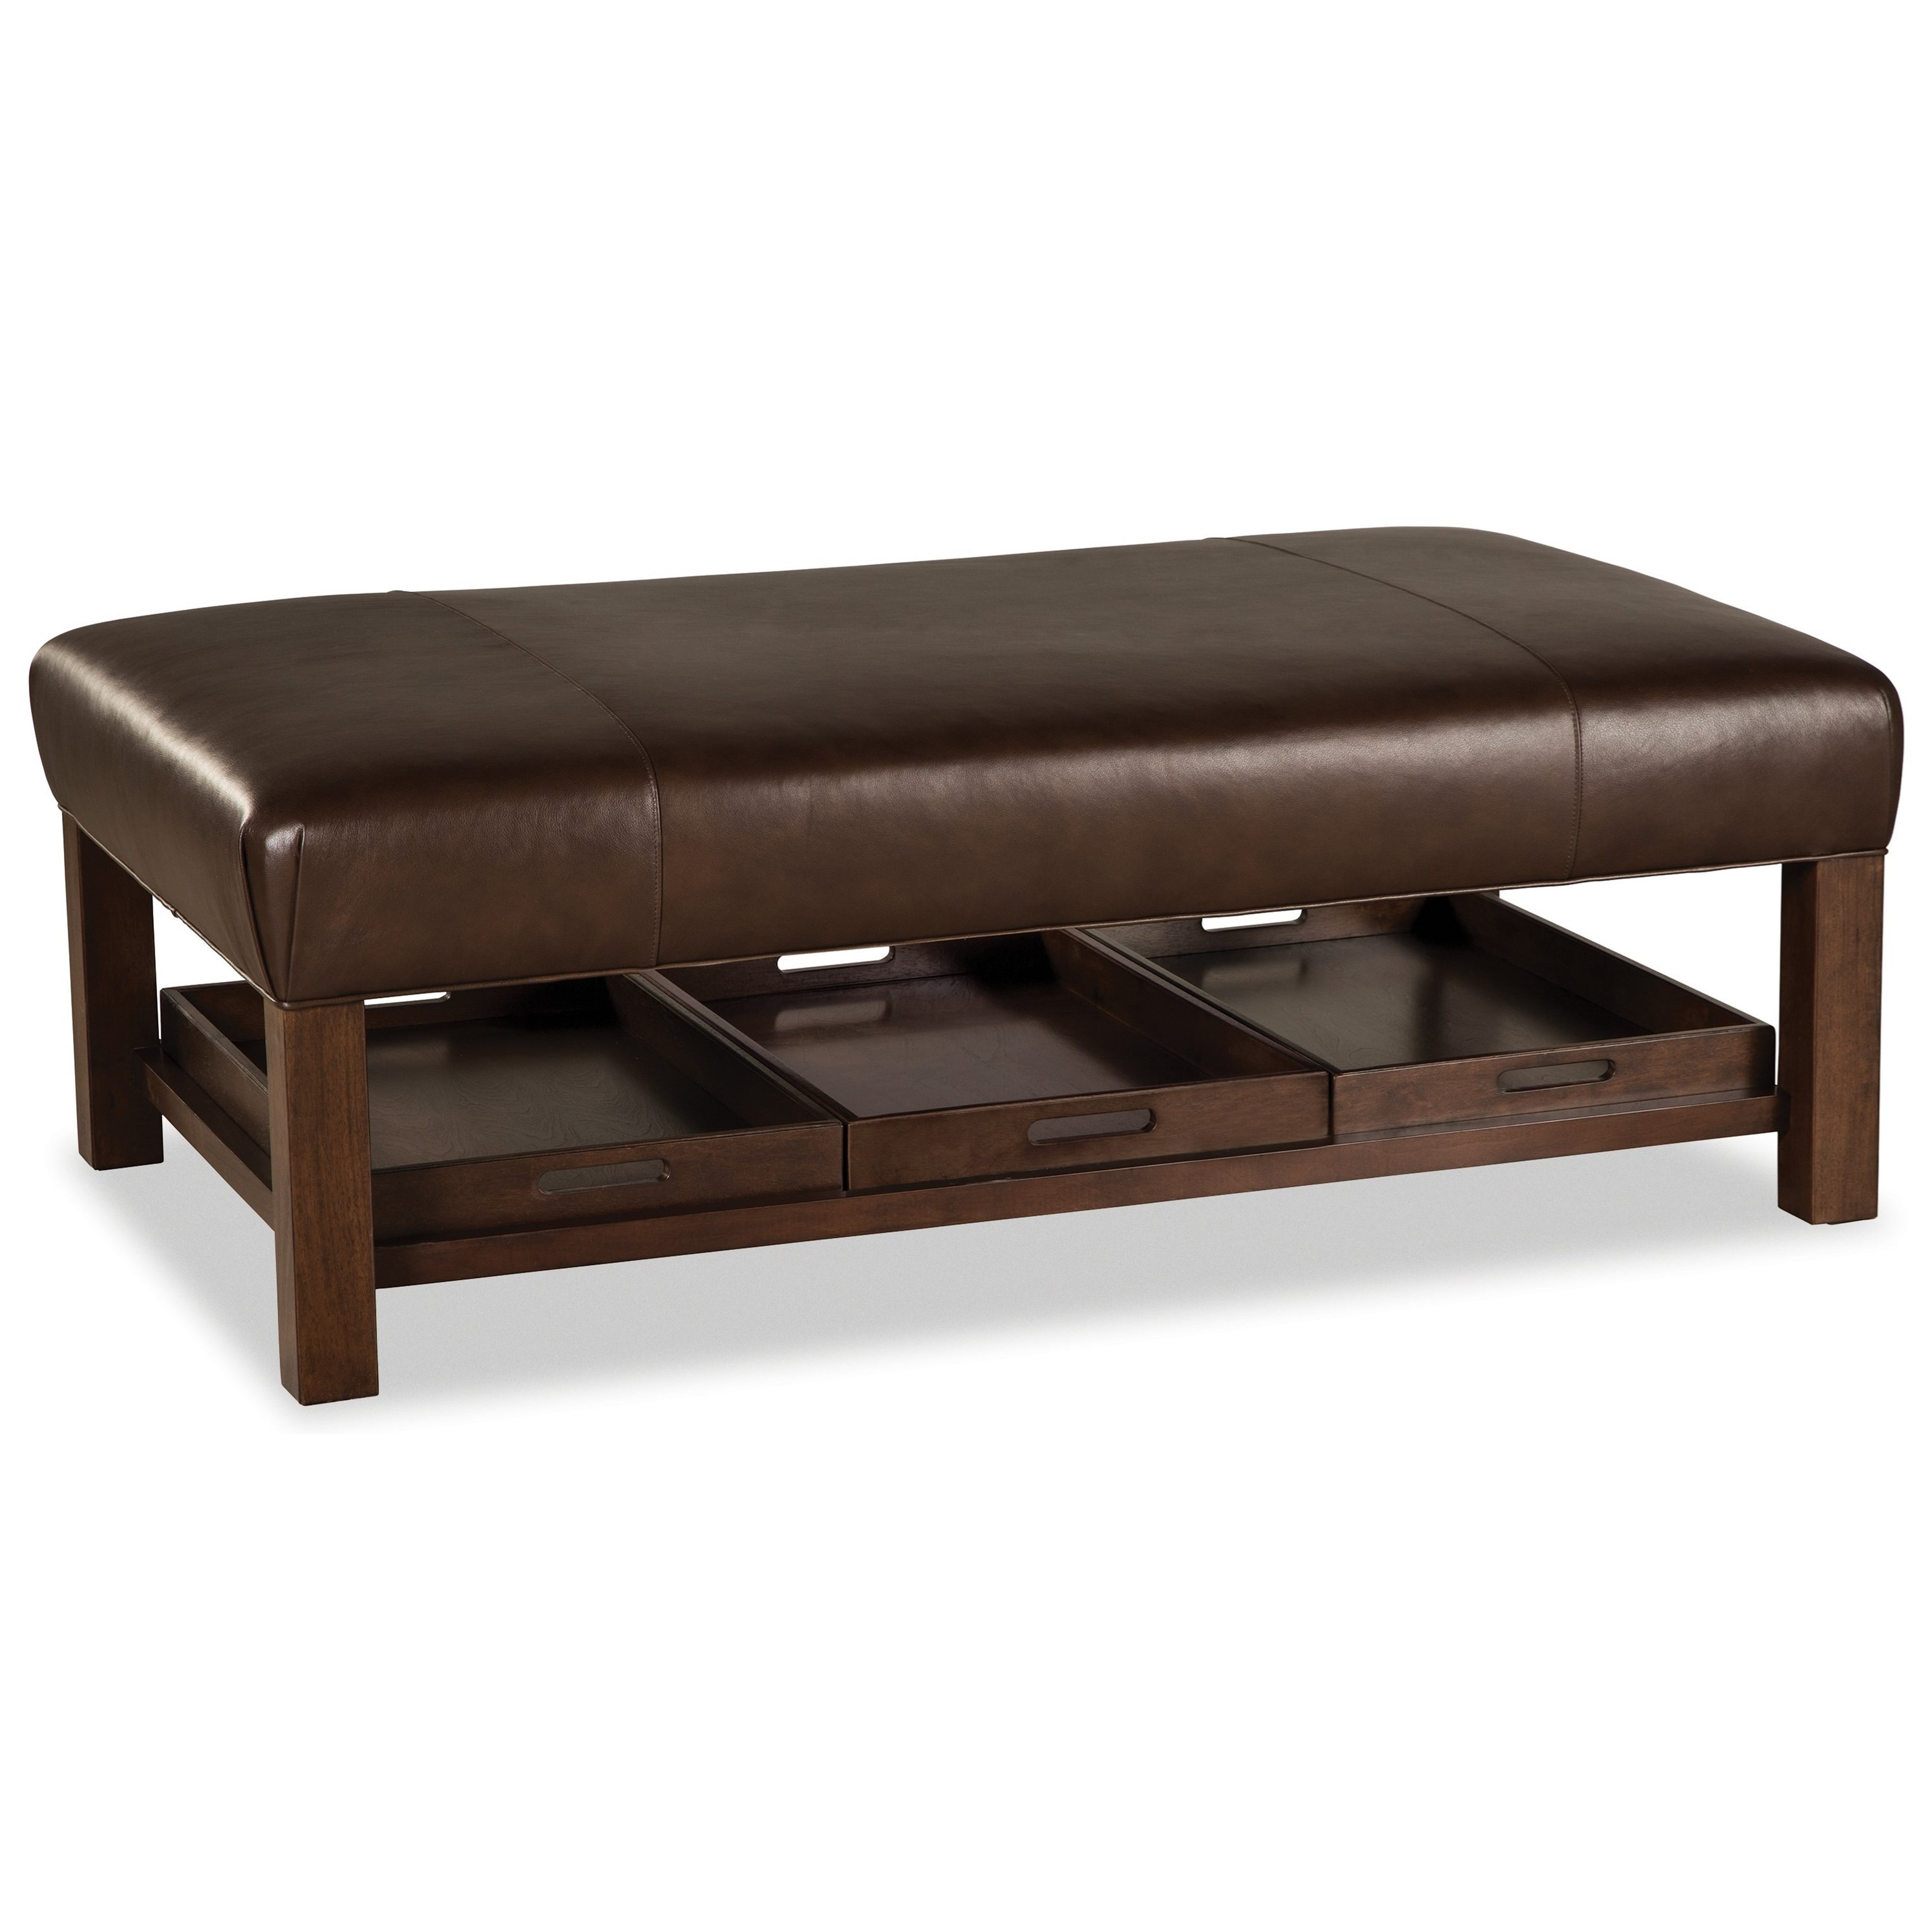 L034500 Large Ottoman by Craftmaster at Suburban Furniture